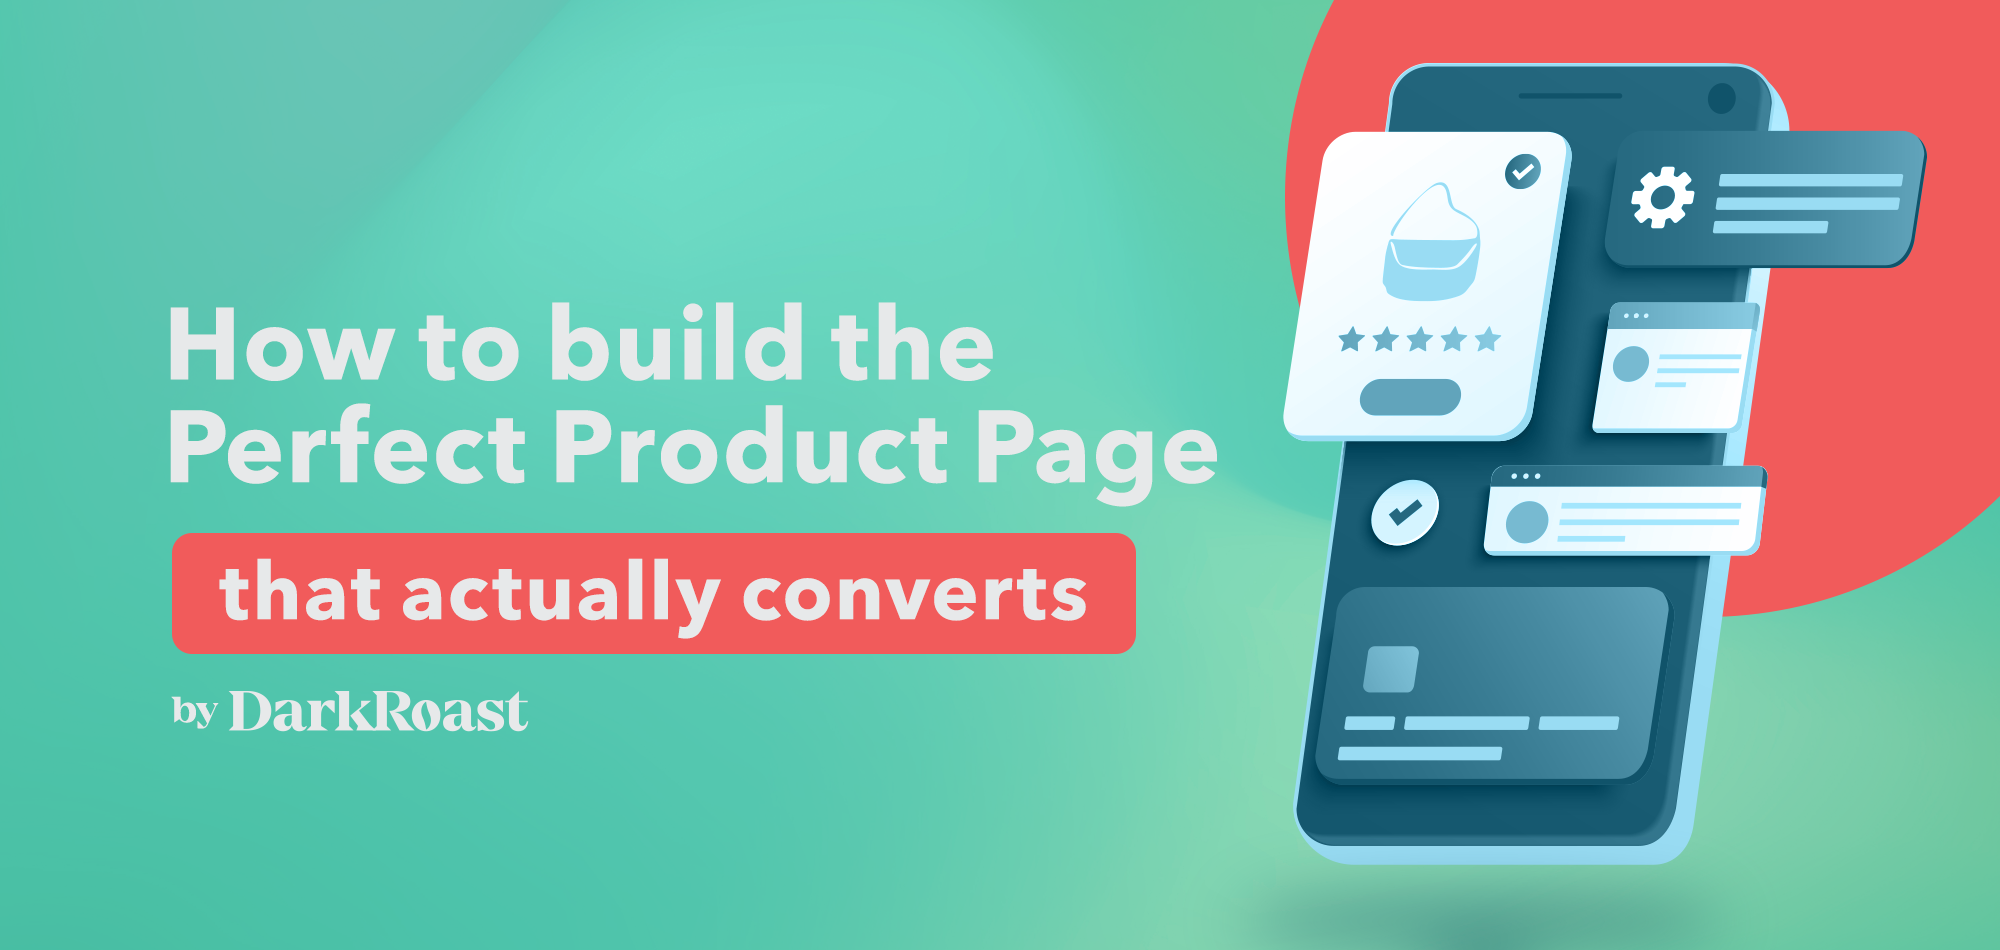 How To Build The Perfect Product Page in 2022 (that actually converts!)